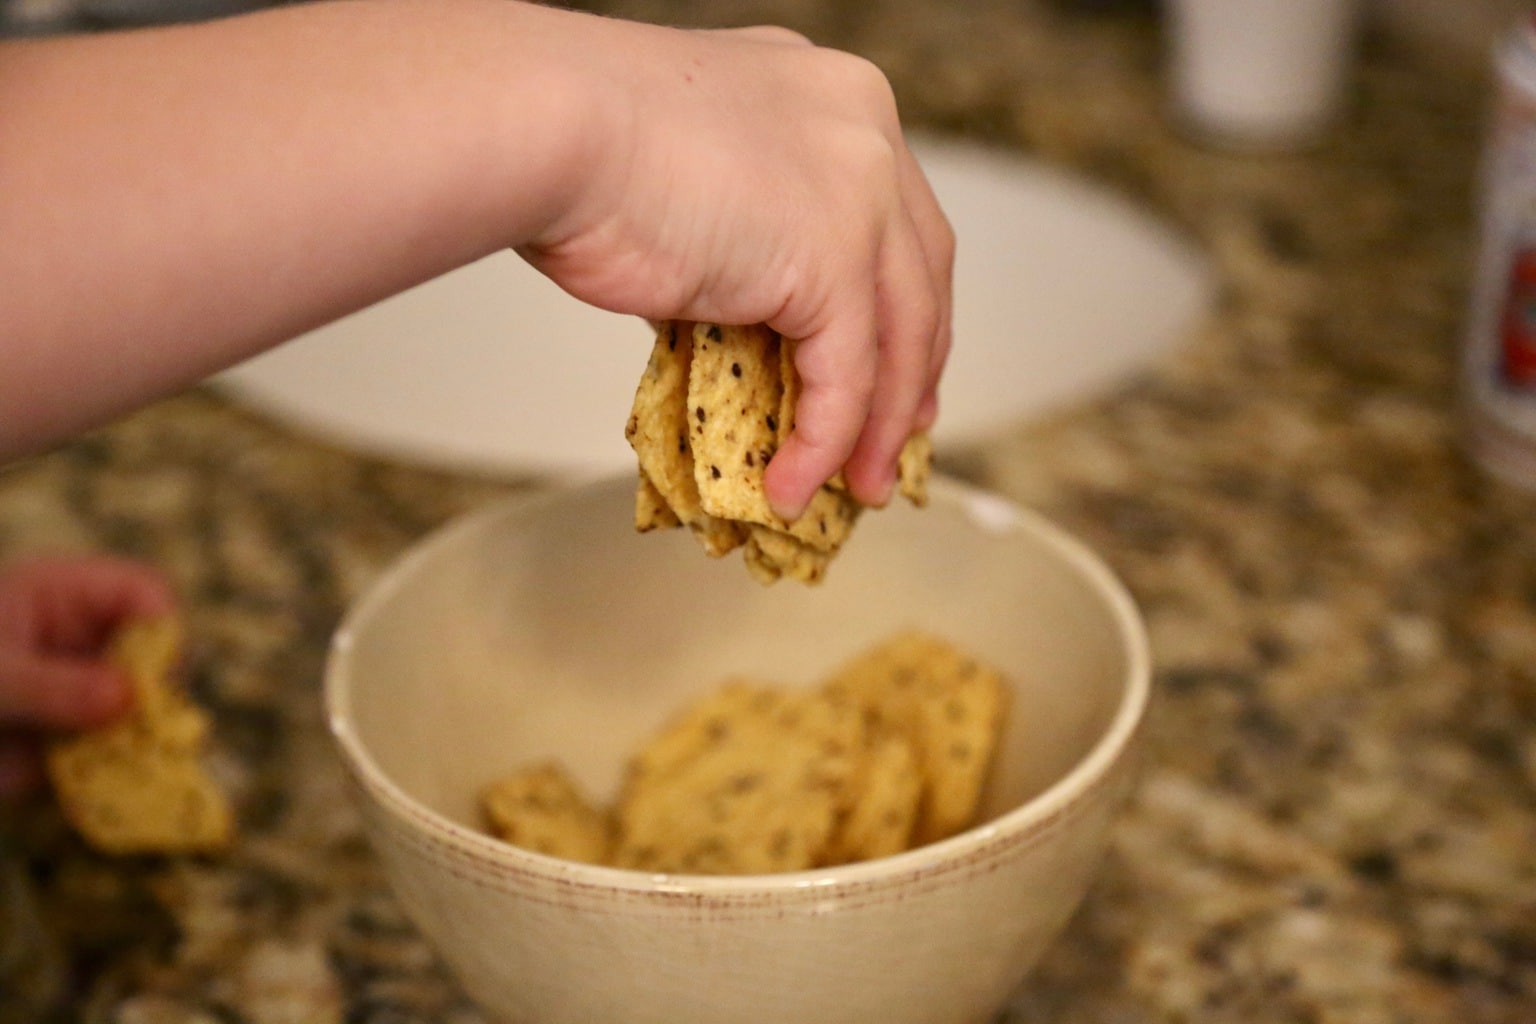 CHILD CRUSHING CHIPS WITH HANDS